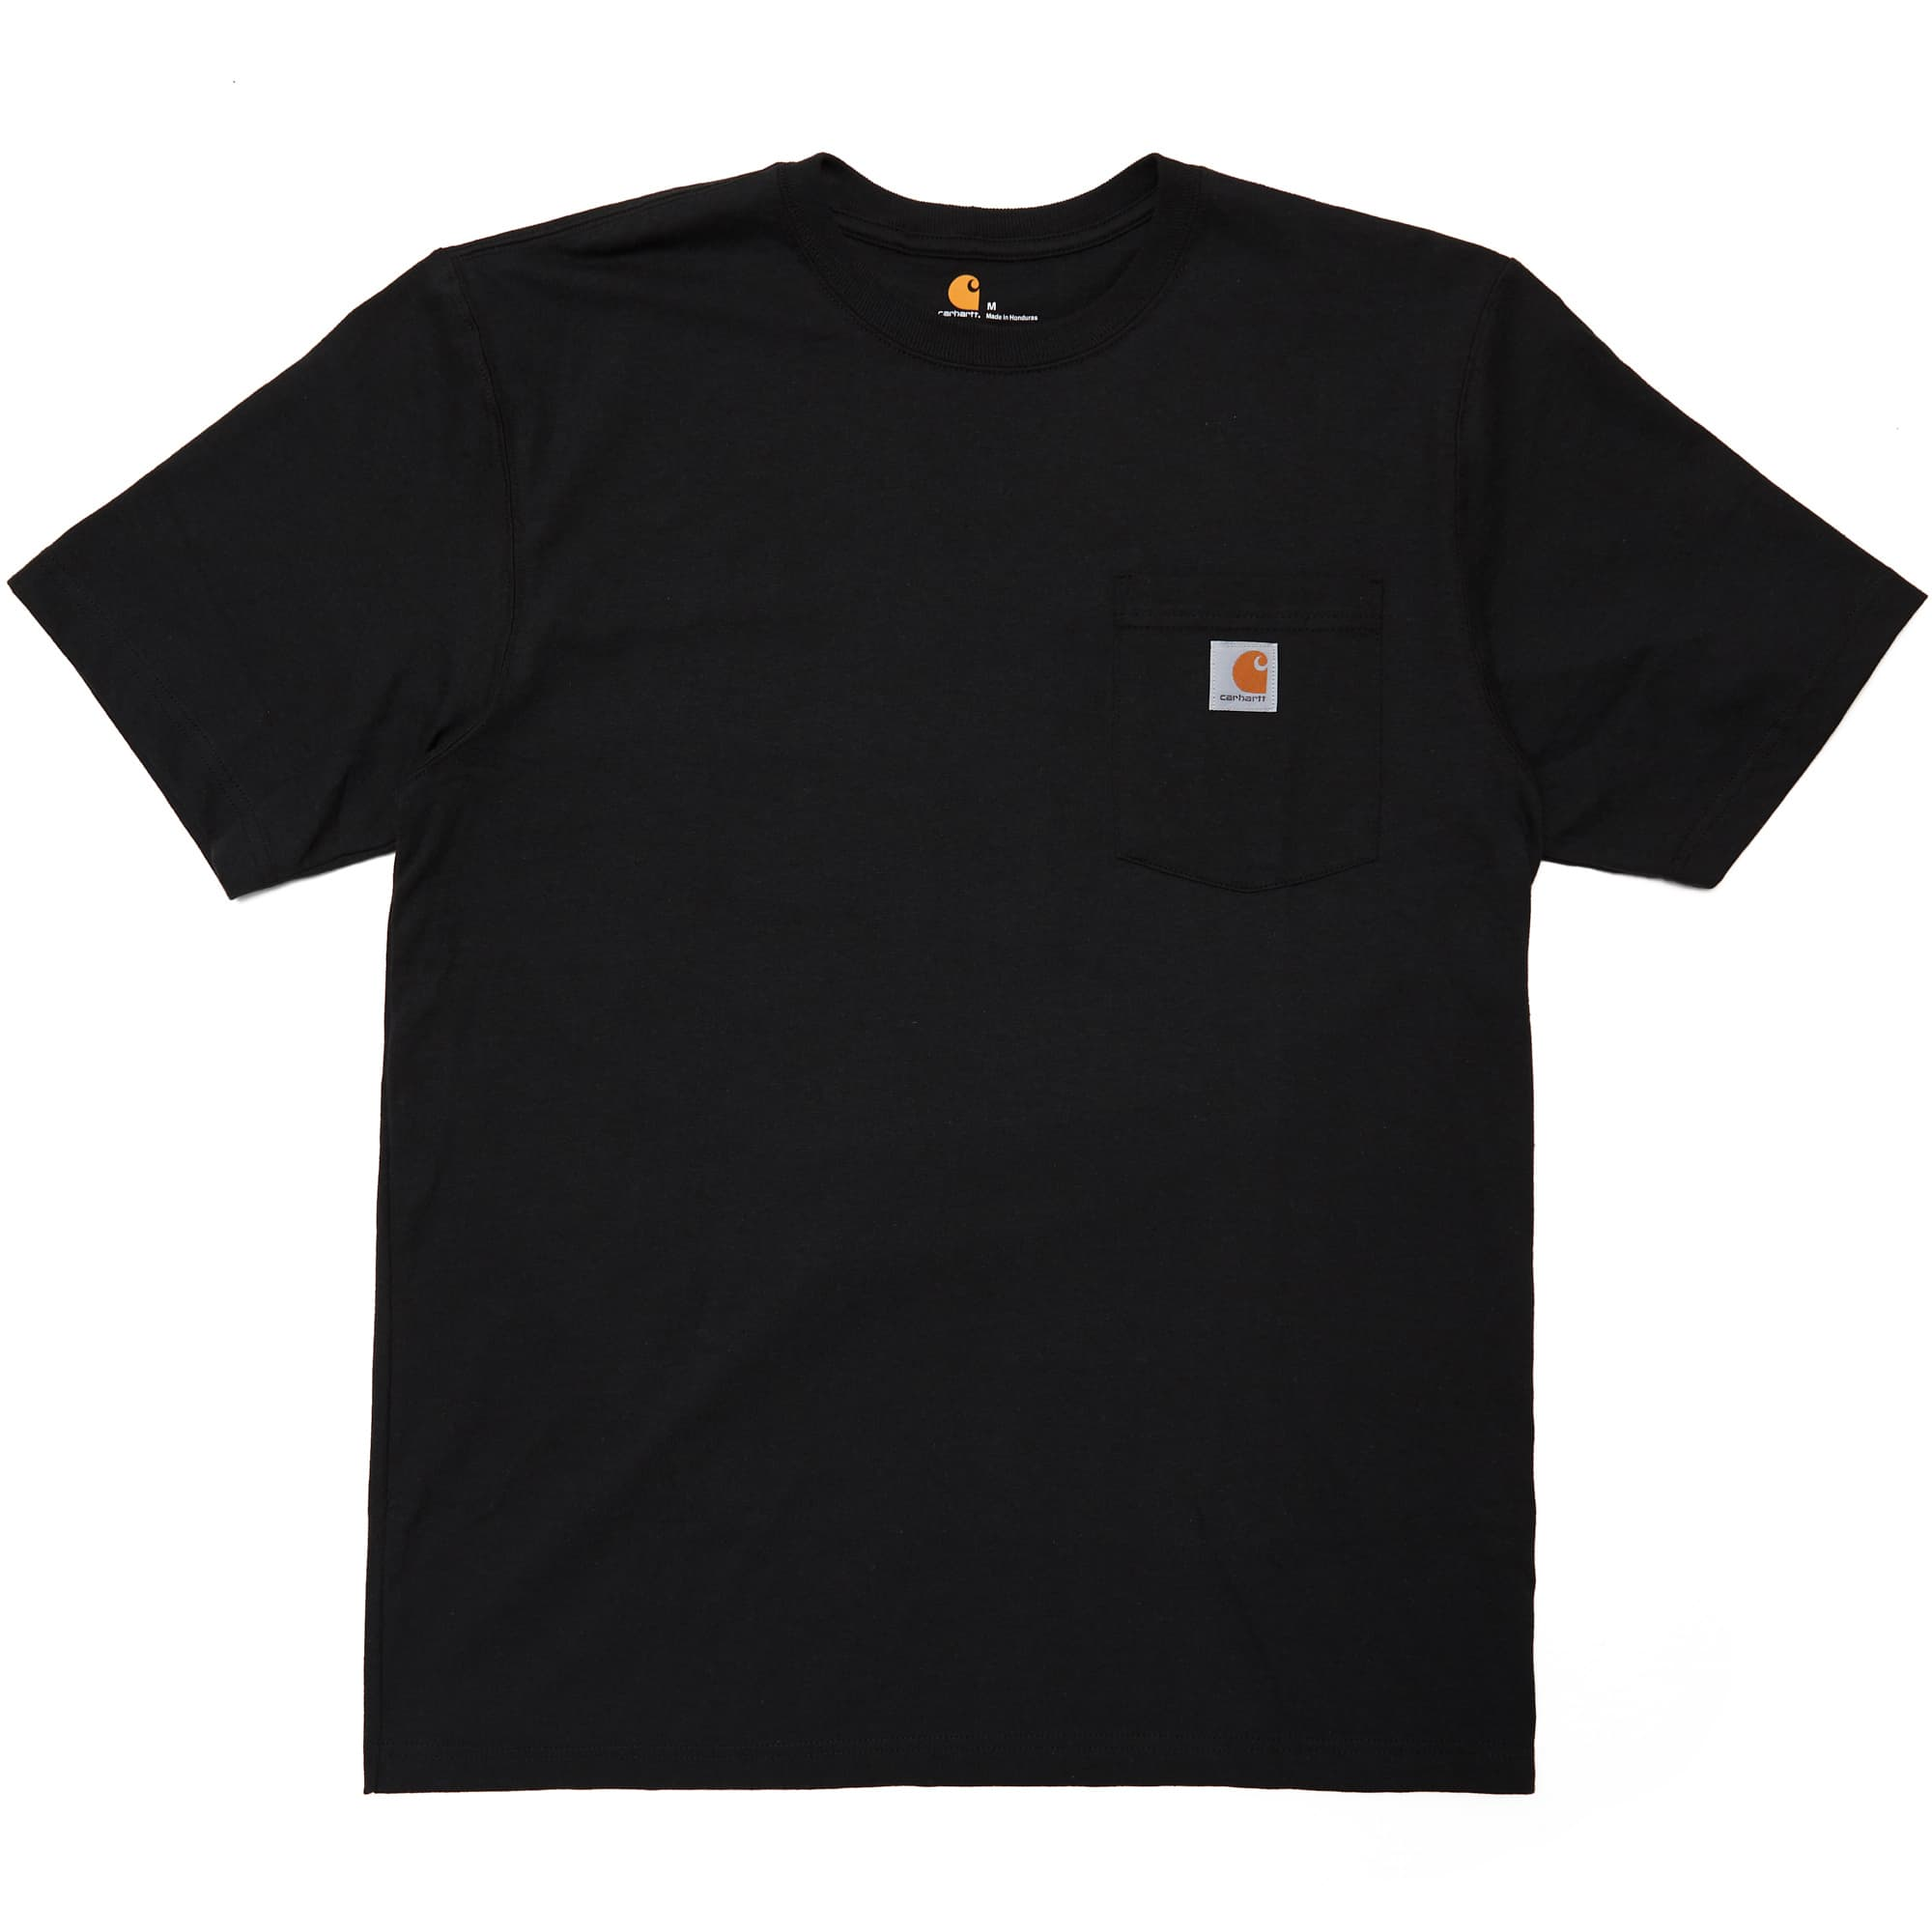 116 x Carhartt 'Not In Vain' Tee